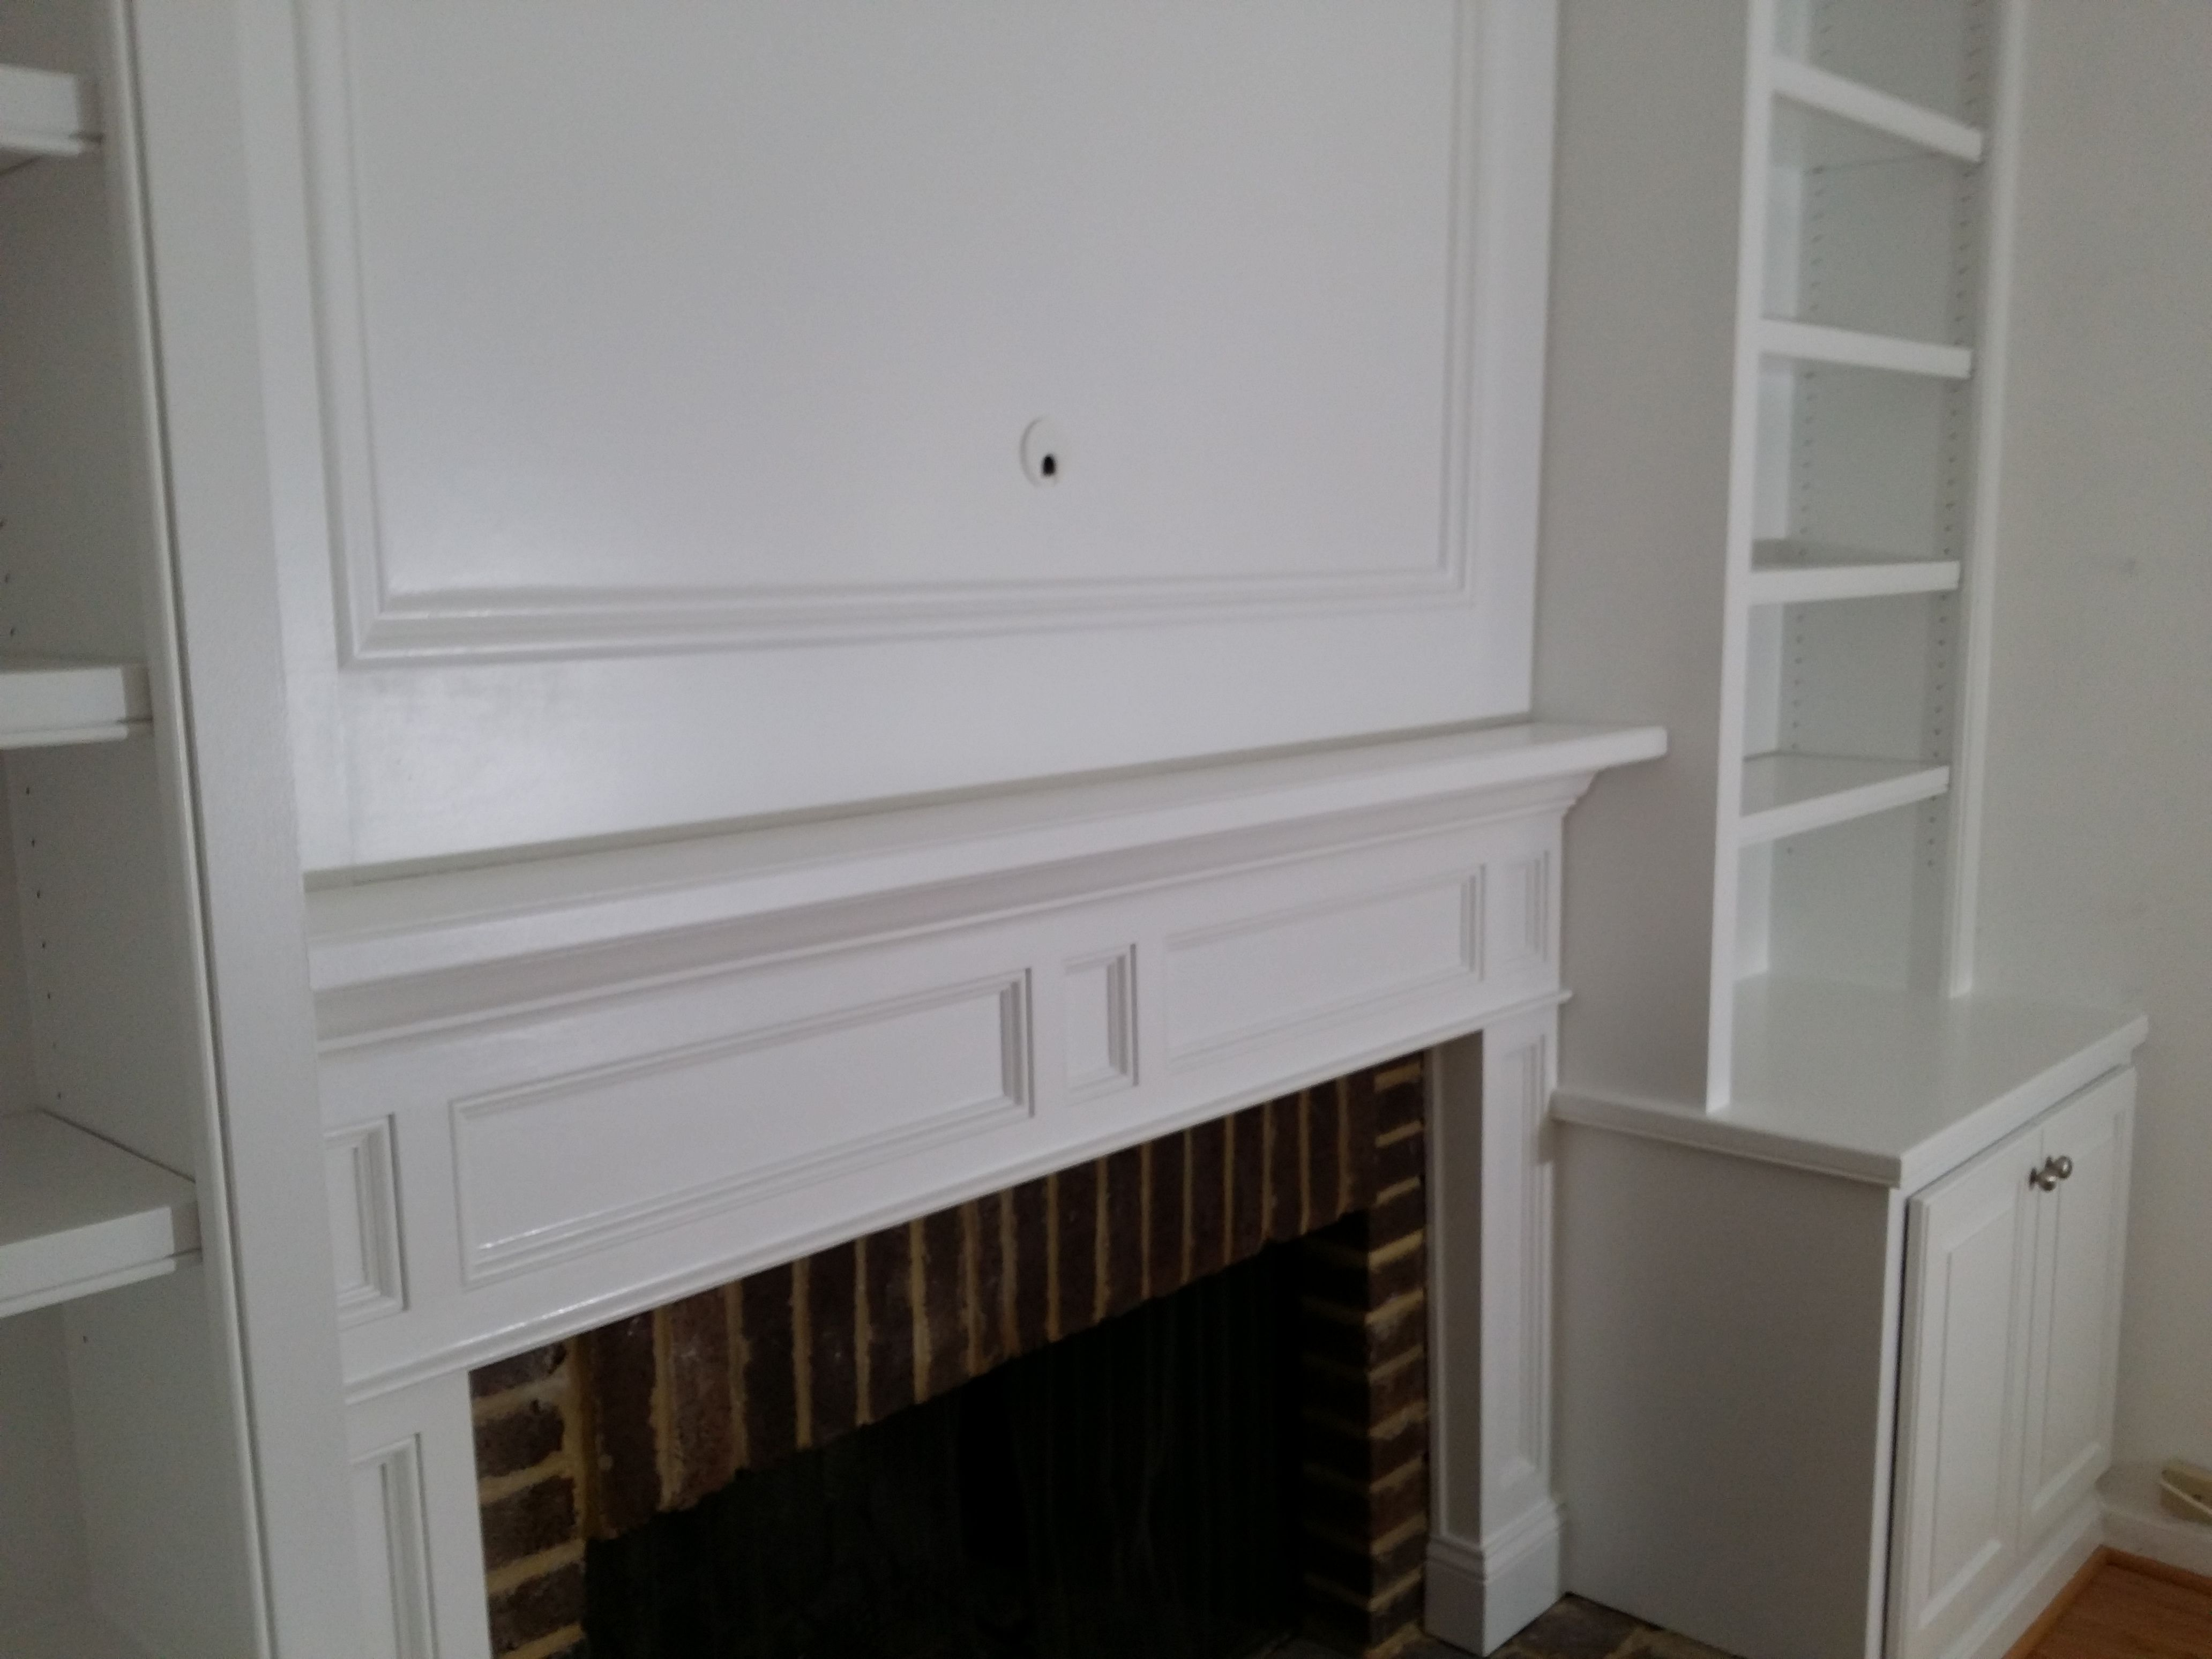 Fireplace Mantel Surround With Recessed Panels Hidden Access For